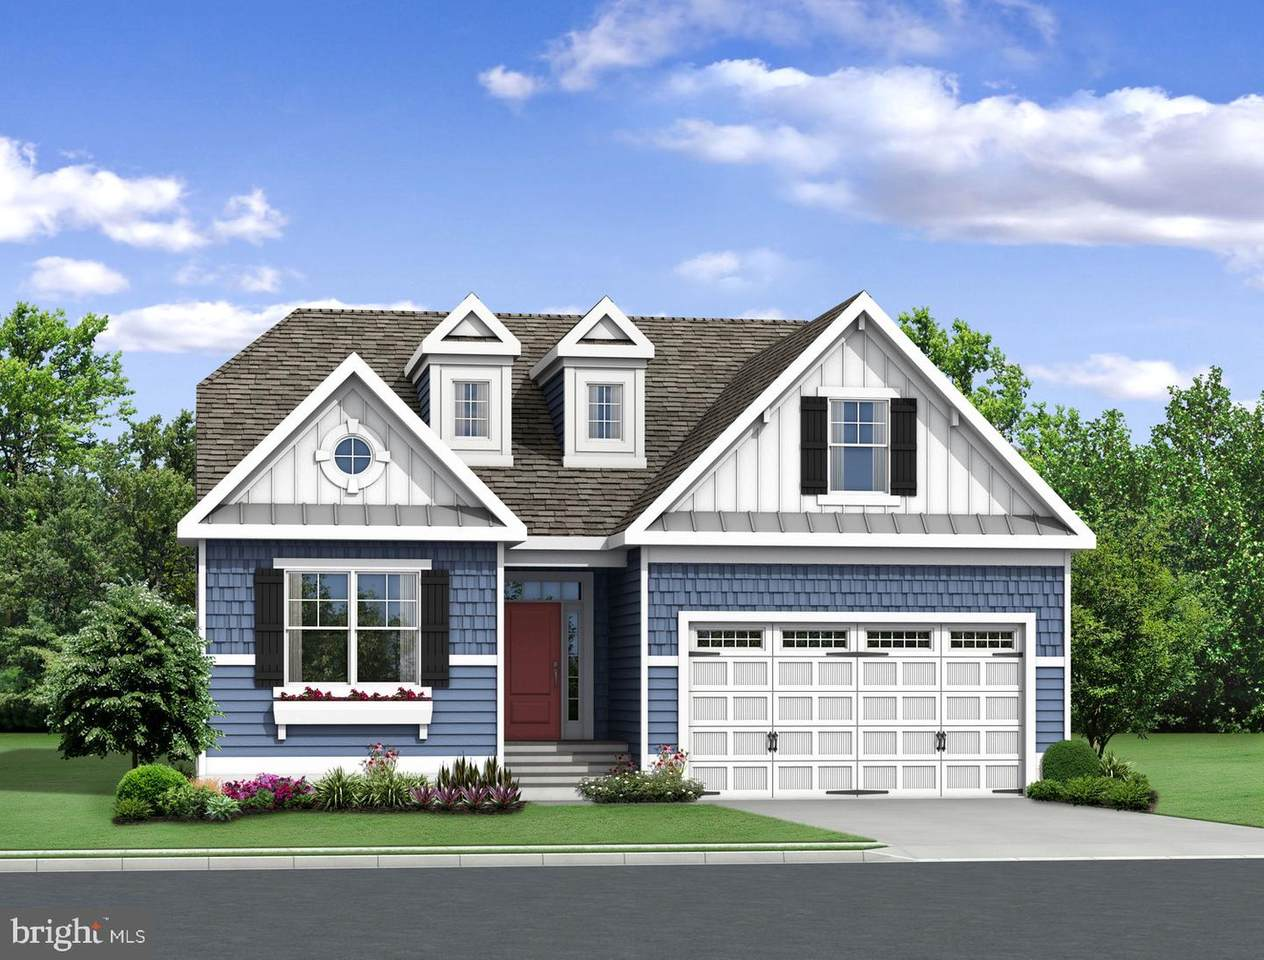 Lot #246 Piping Plover Drive - Photo 1